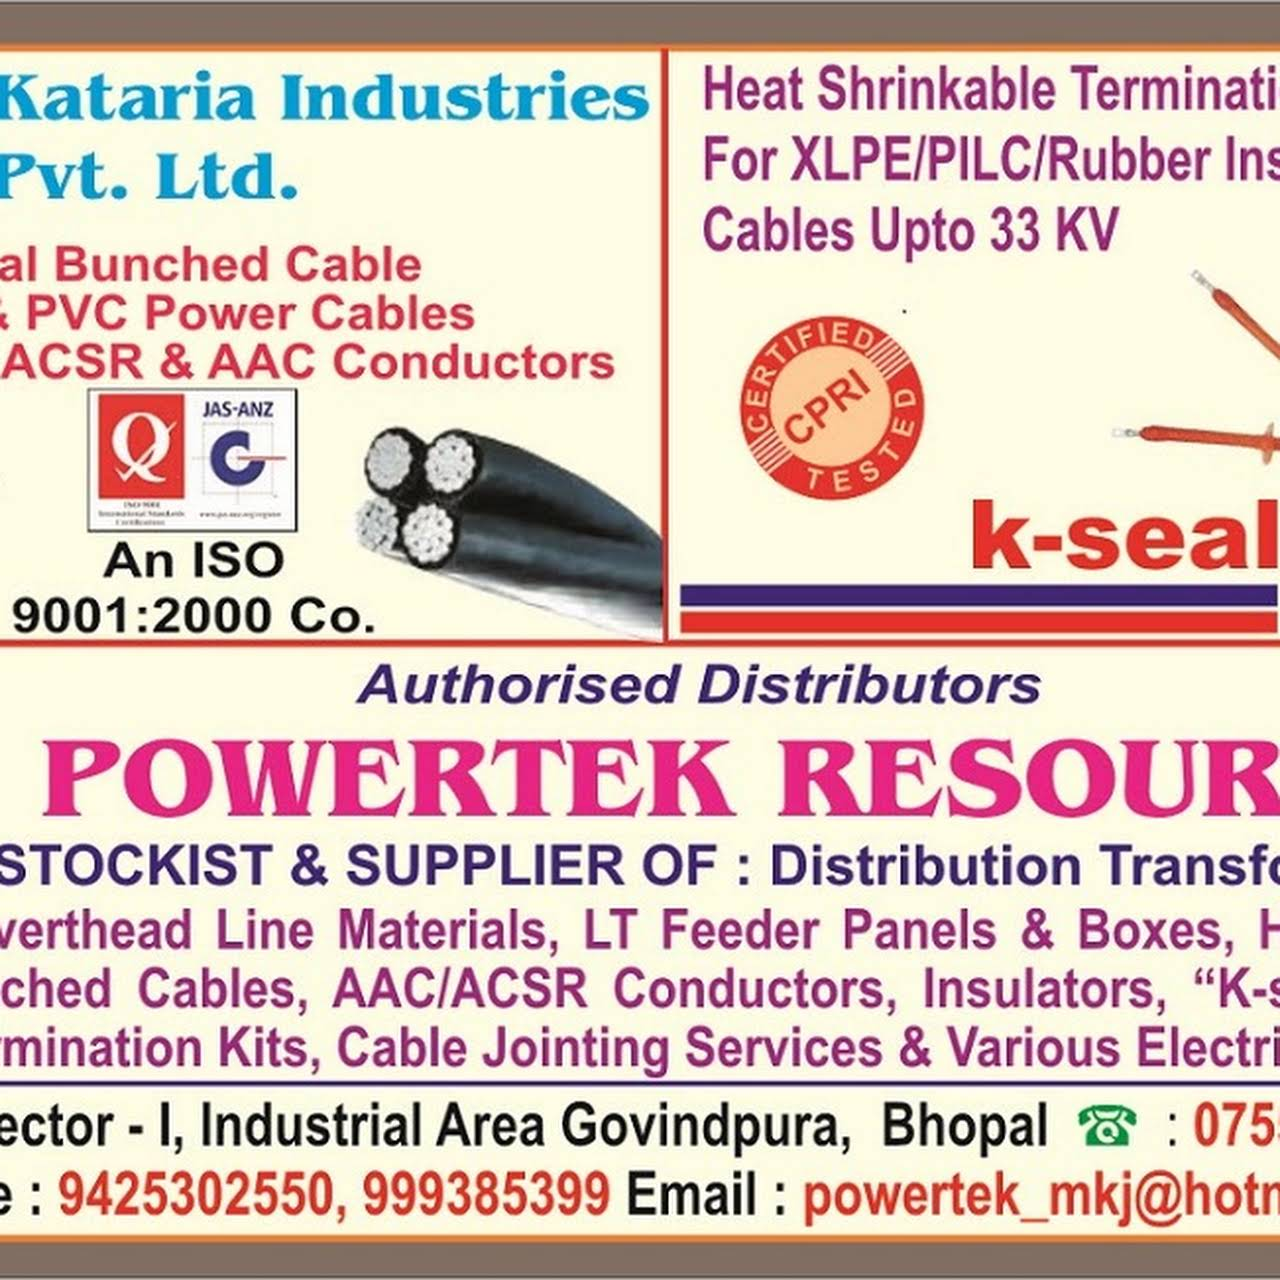 Powertek Resources - Authorised Distributor, Stockist